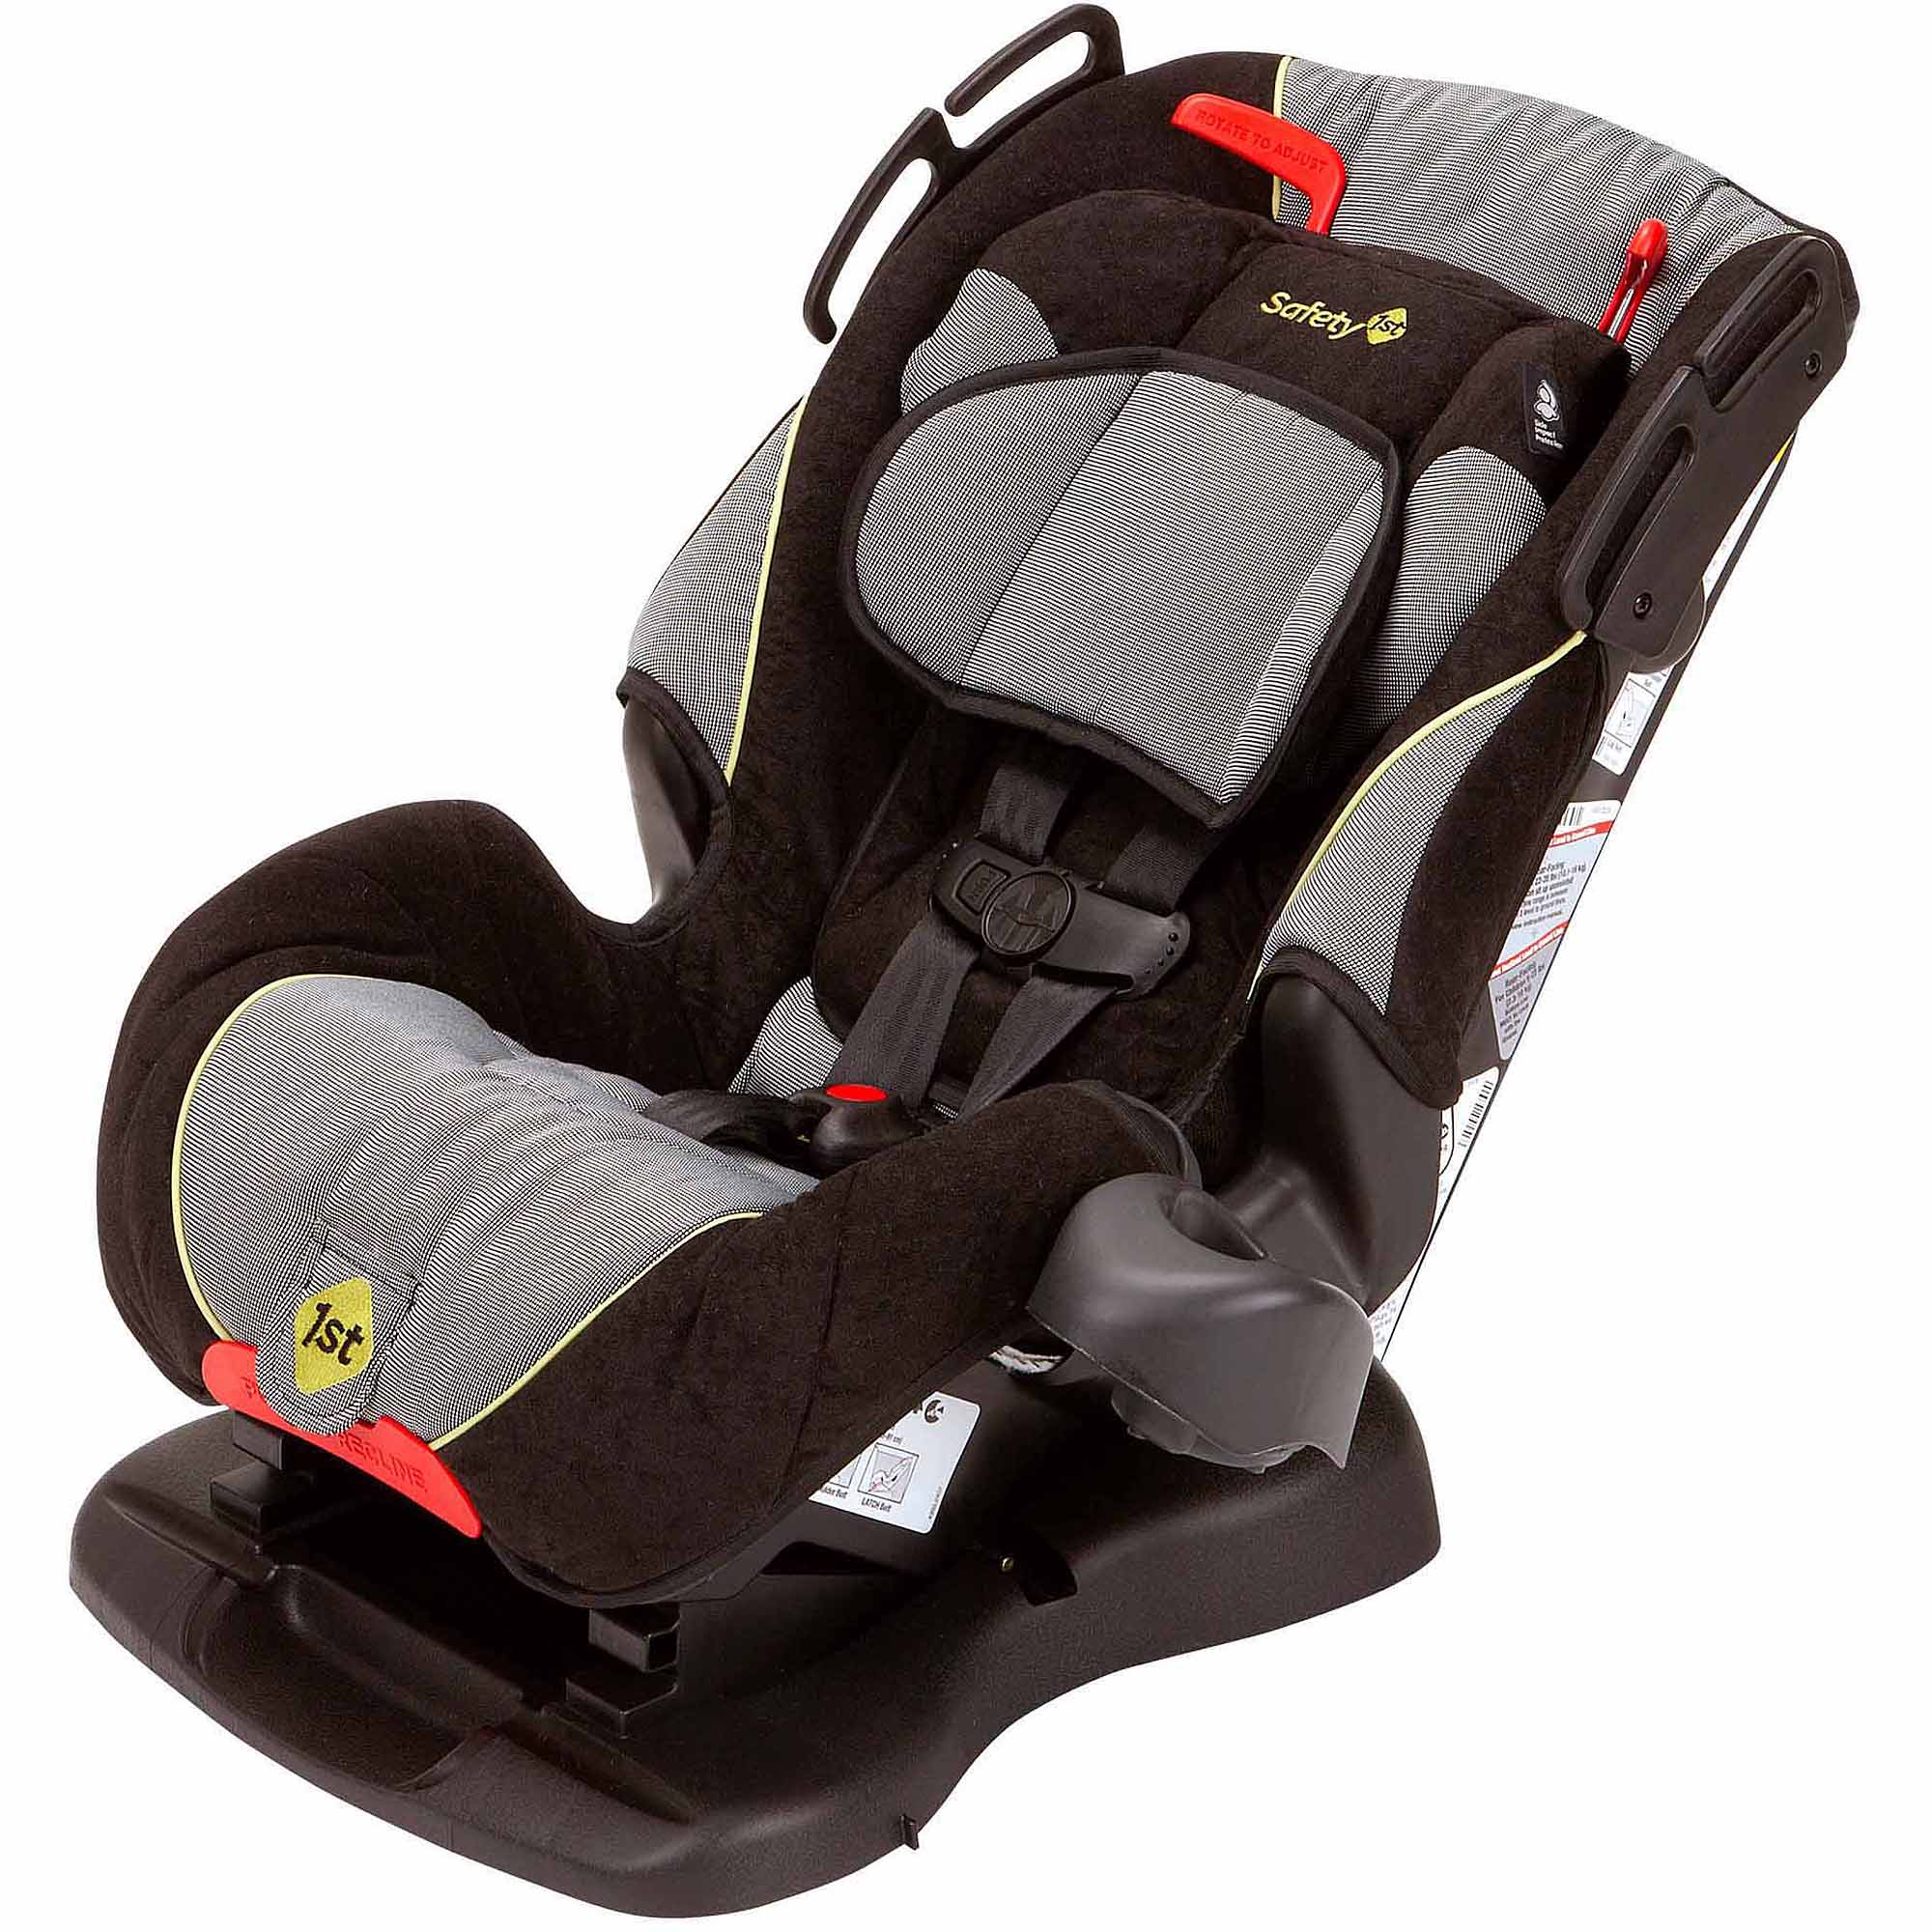 alpha elite car seat instructions